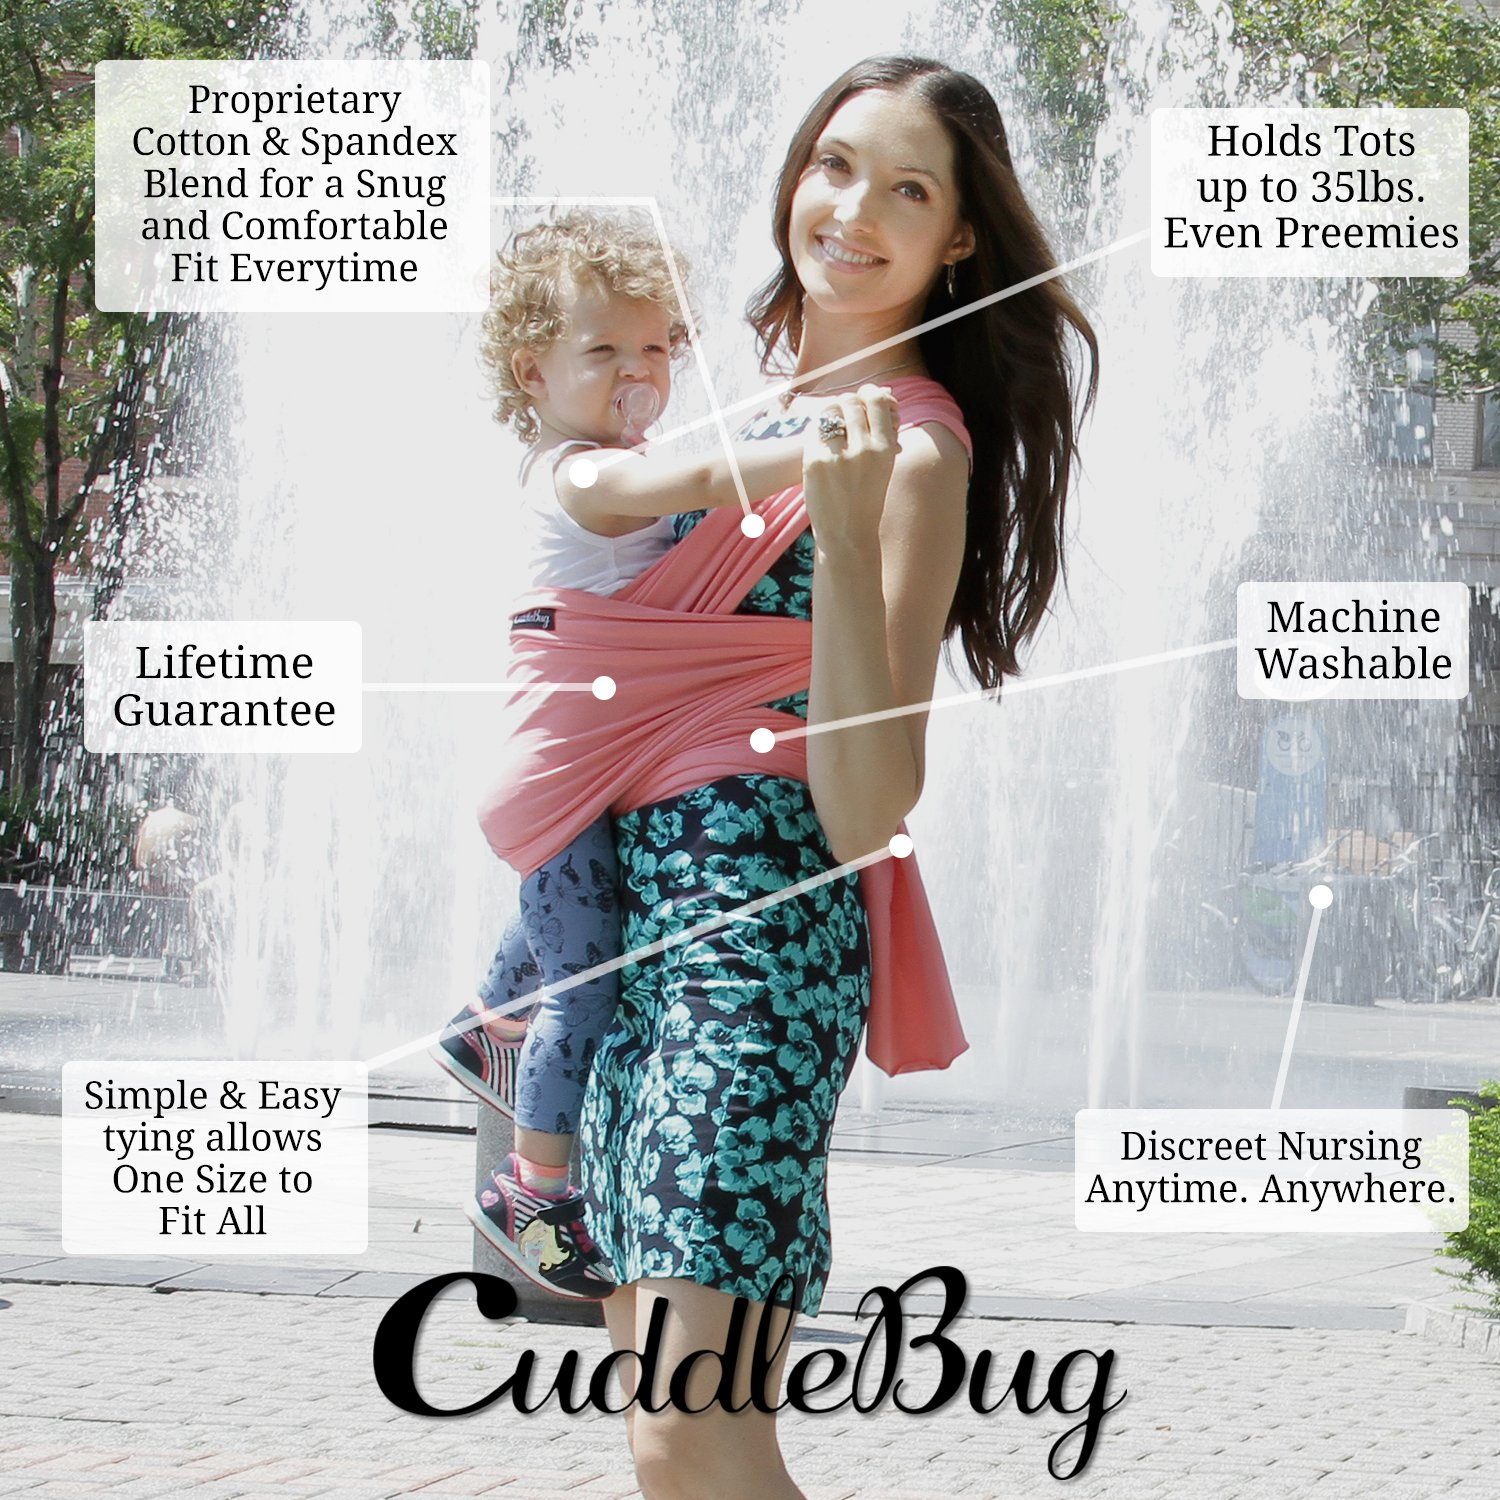 Baby Wrap Ergo Carrier Sling By Cuddlebug Available In 8 Colors